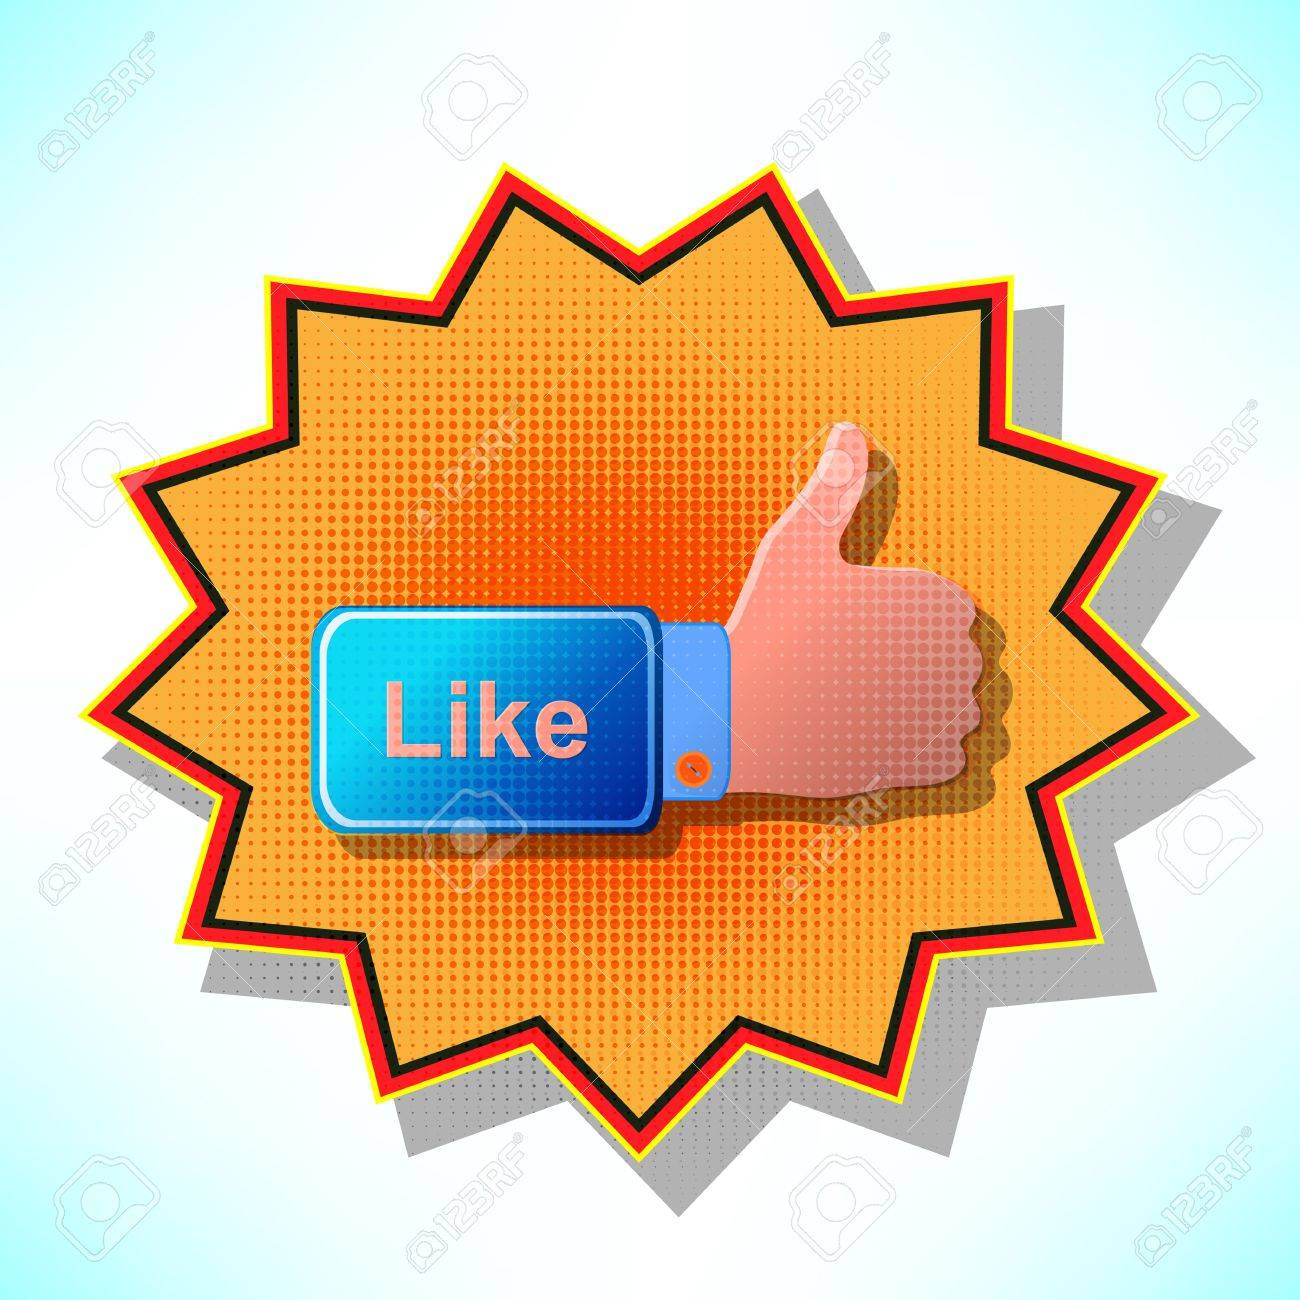 Best Choice labels hand in his jacket blue OK hand icon on the orange background. Stock Vector - 14151377